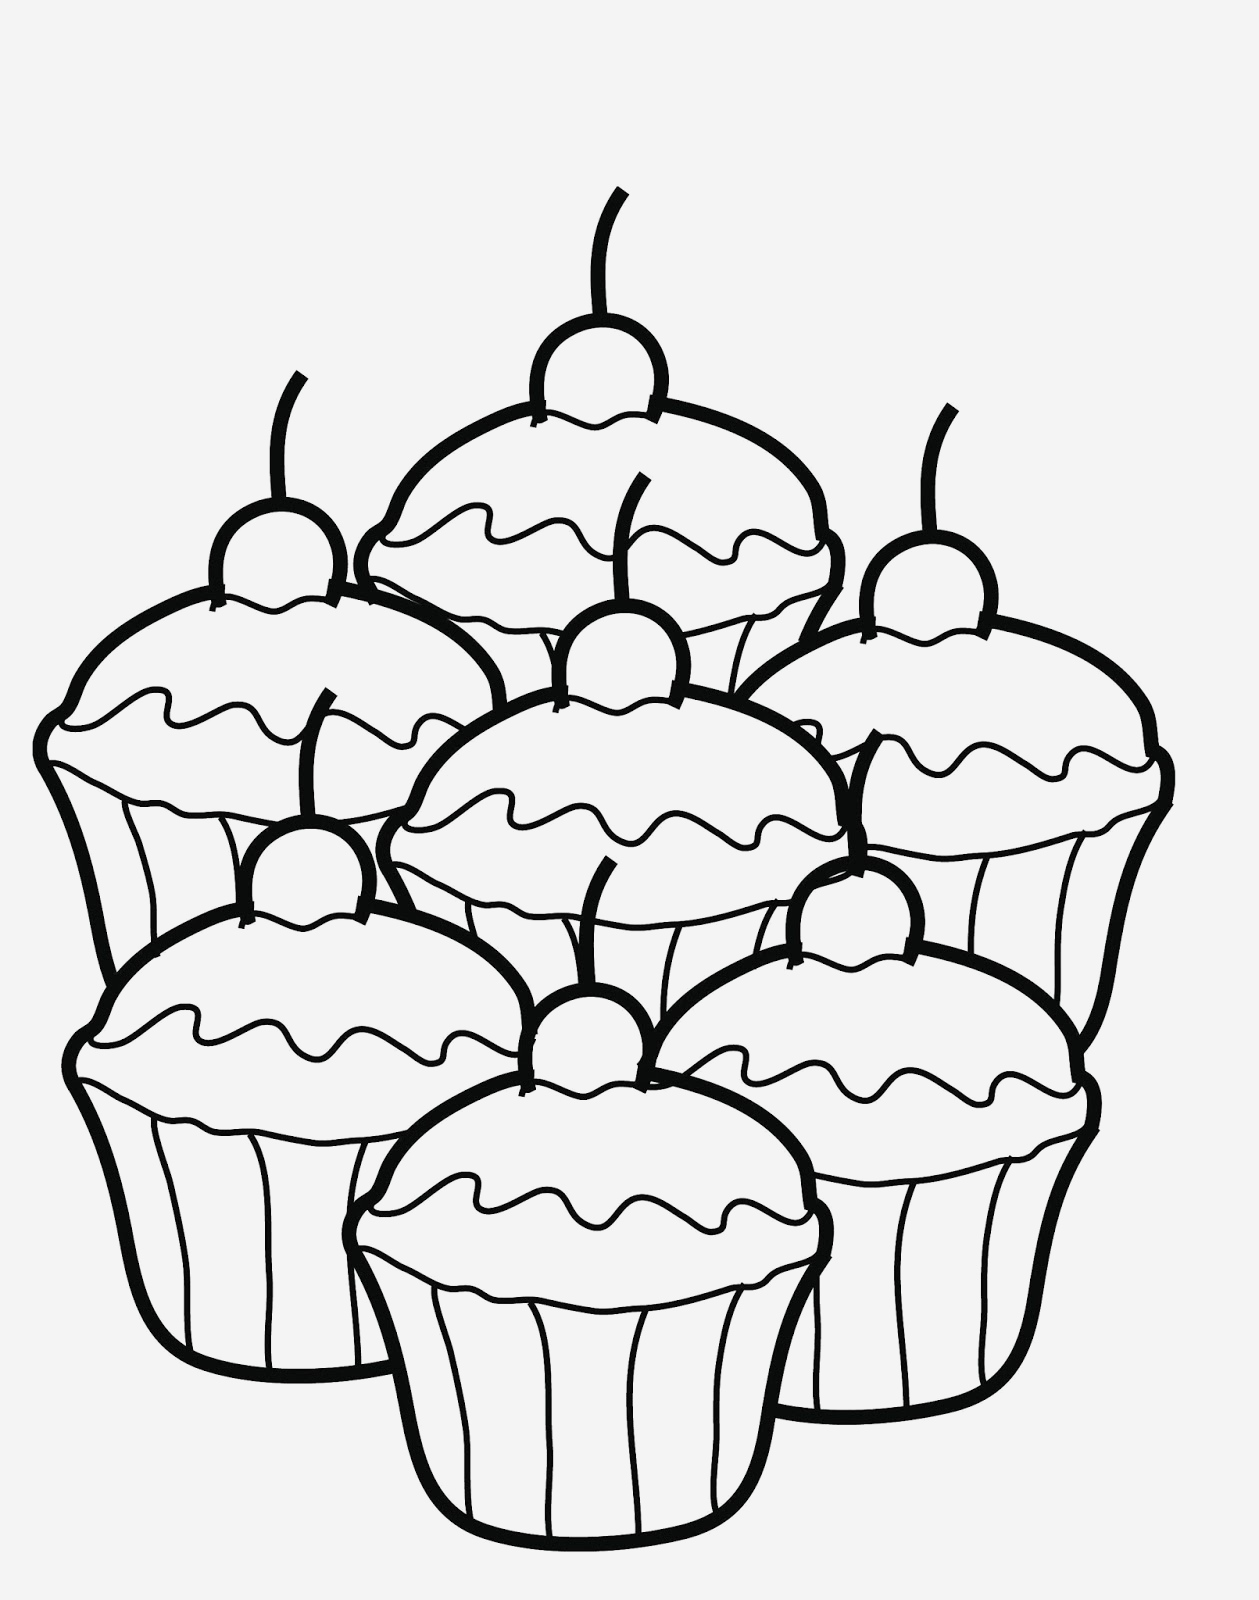 Coloriage Cupcake à Imprimer Lovely √ Coloriage Noel Grand format Of Coloriage Cupcake à Imprimer